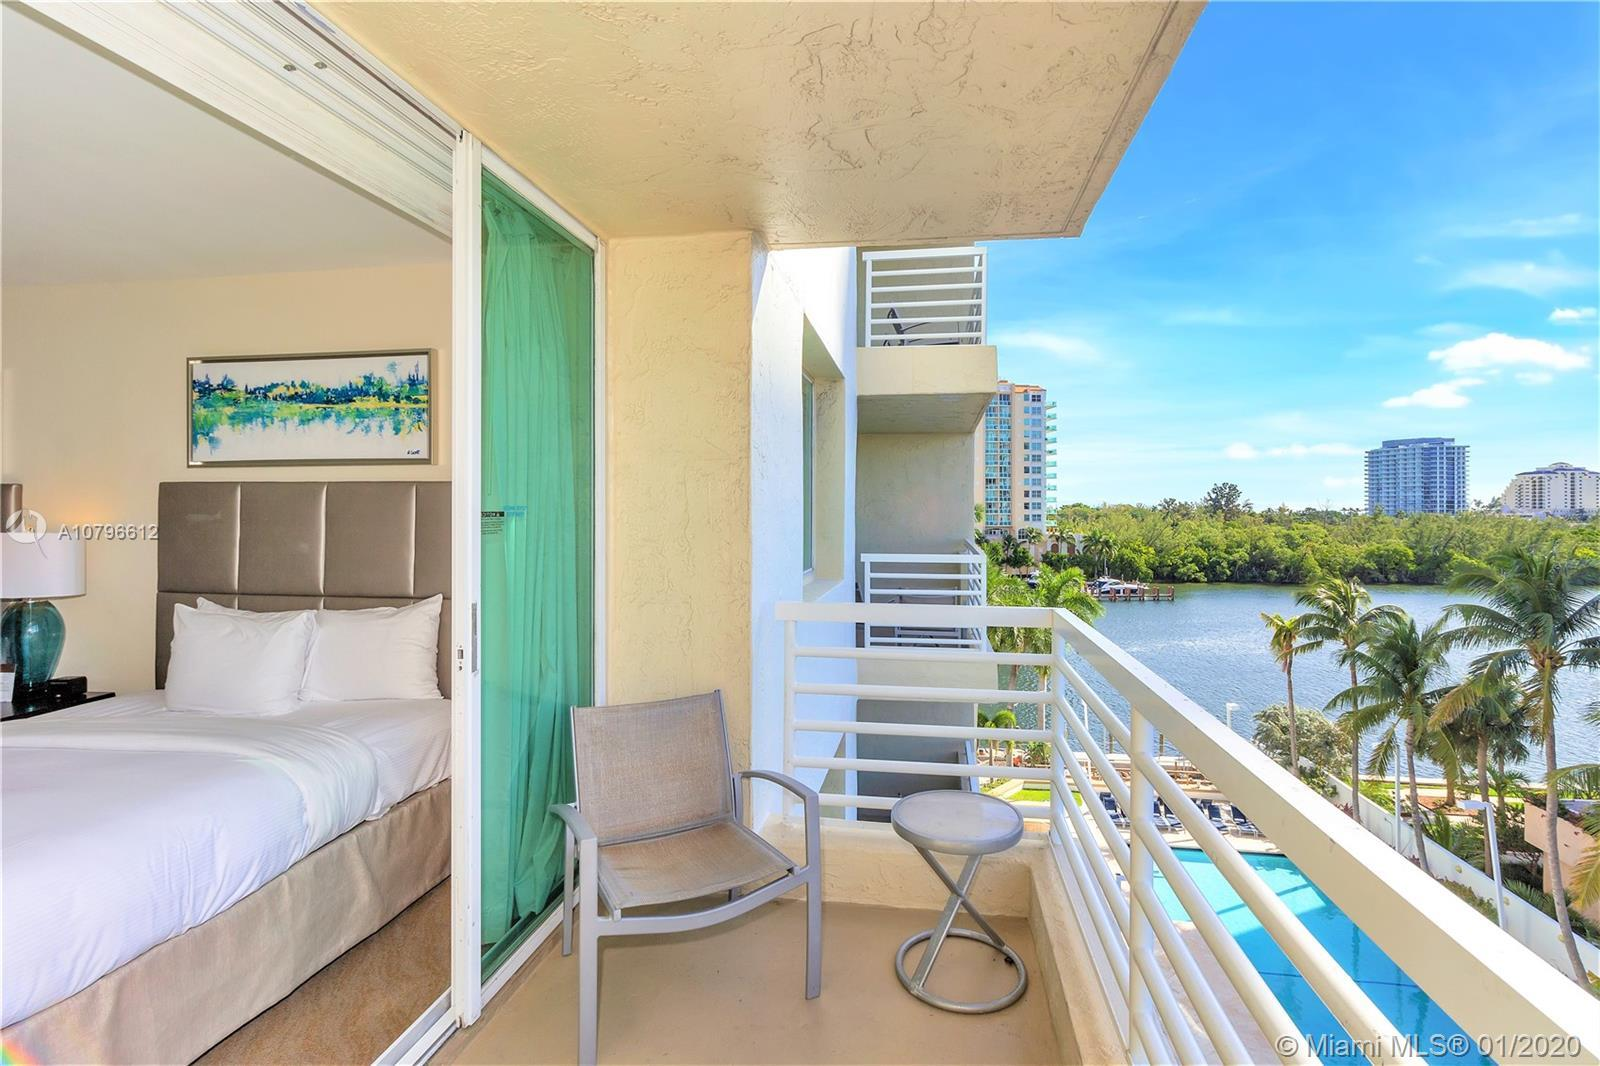 SPACIOUS 2/2 CORNER GUEST SUITE IN THE GALLERY ONE, A DOUBLETREE SUITES BY HILTON CONDO HOTEL. SOUT